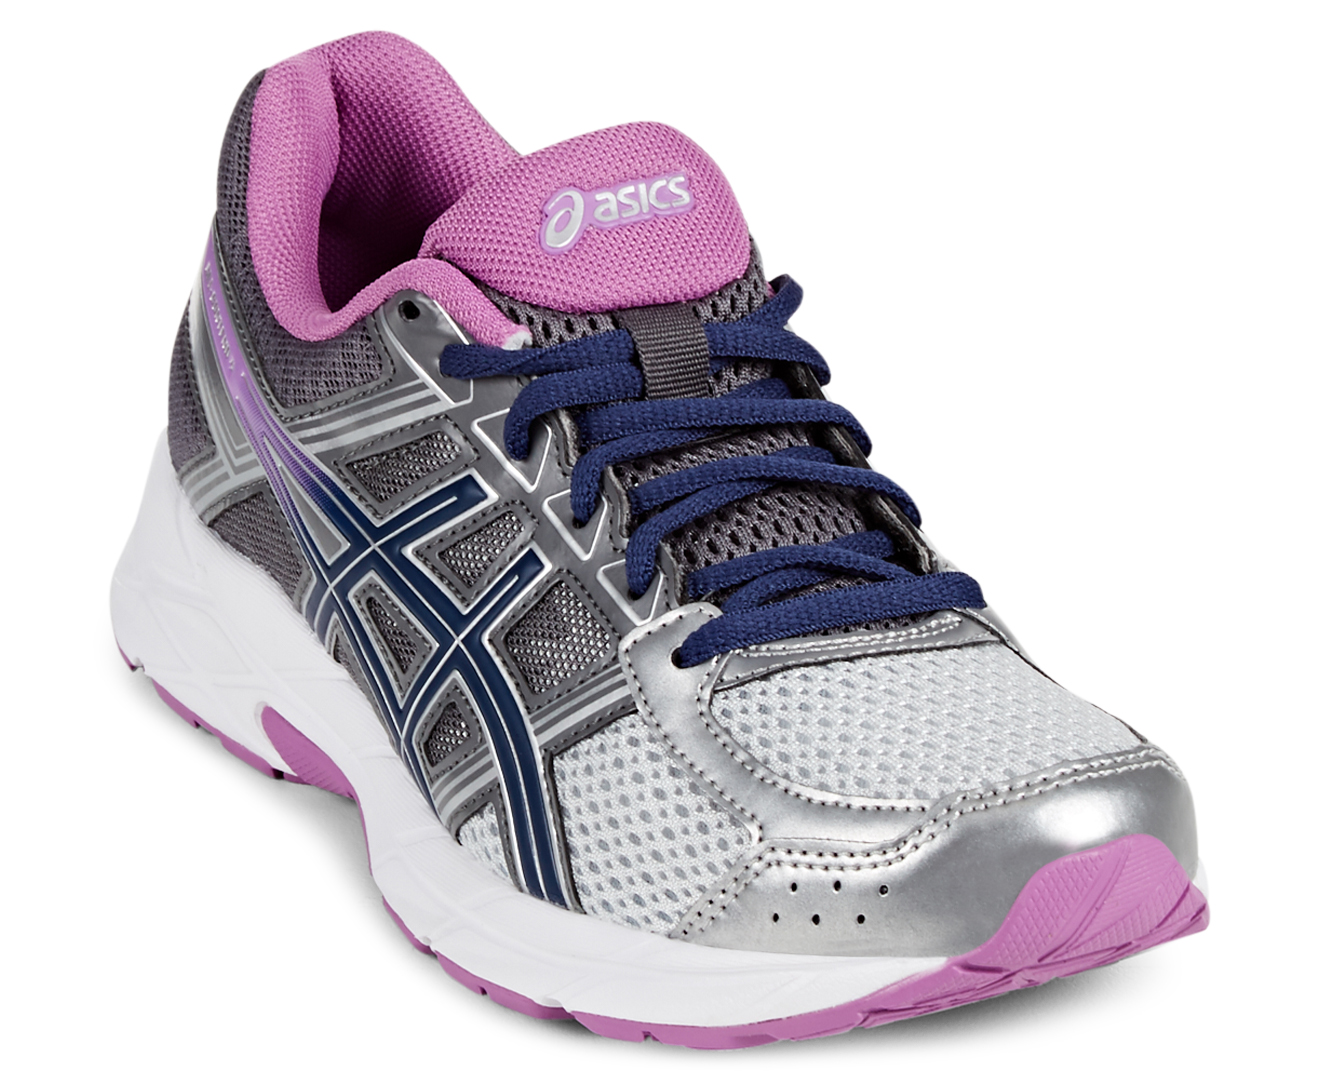 21495260e03e ... Running Shoes in Silver Campanula outlet  ASICS Womens GEL-Contend 4  Shoe - SilverCampanulaCarbon Catch.com.au attractive price ...